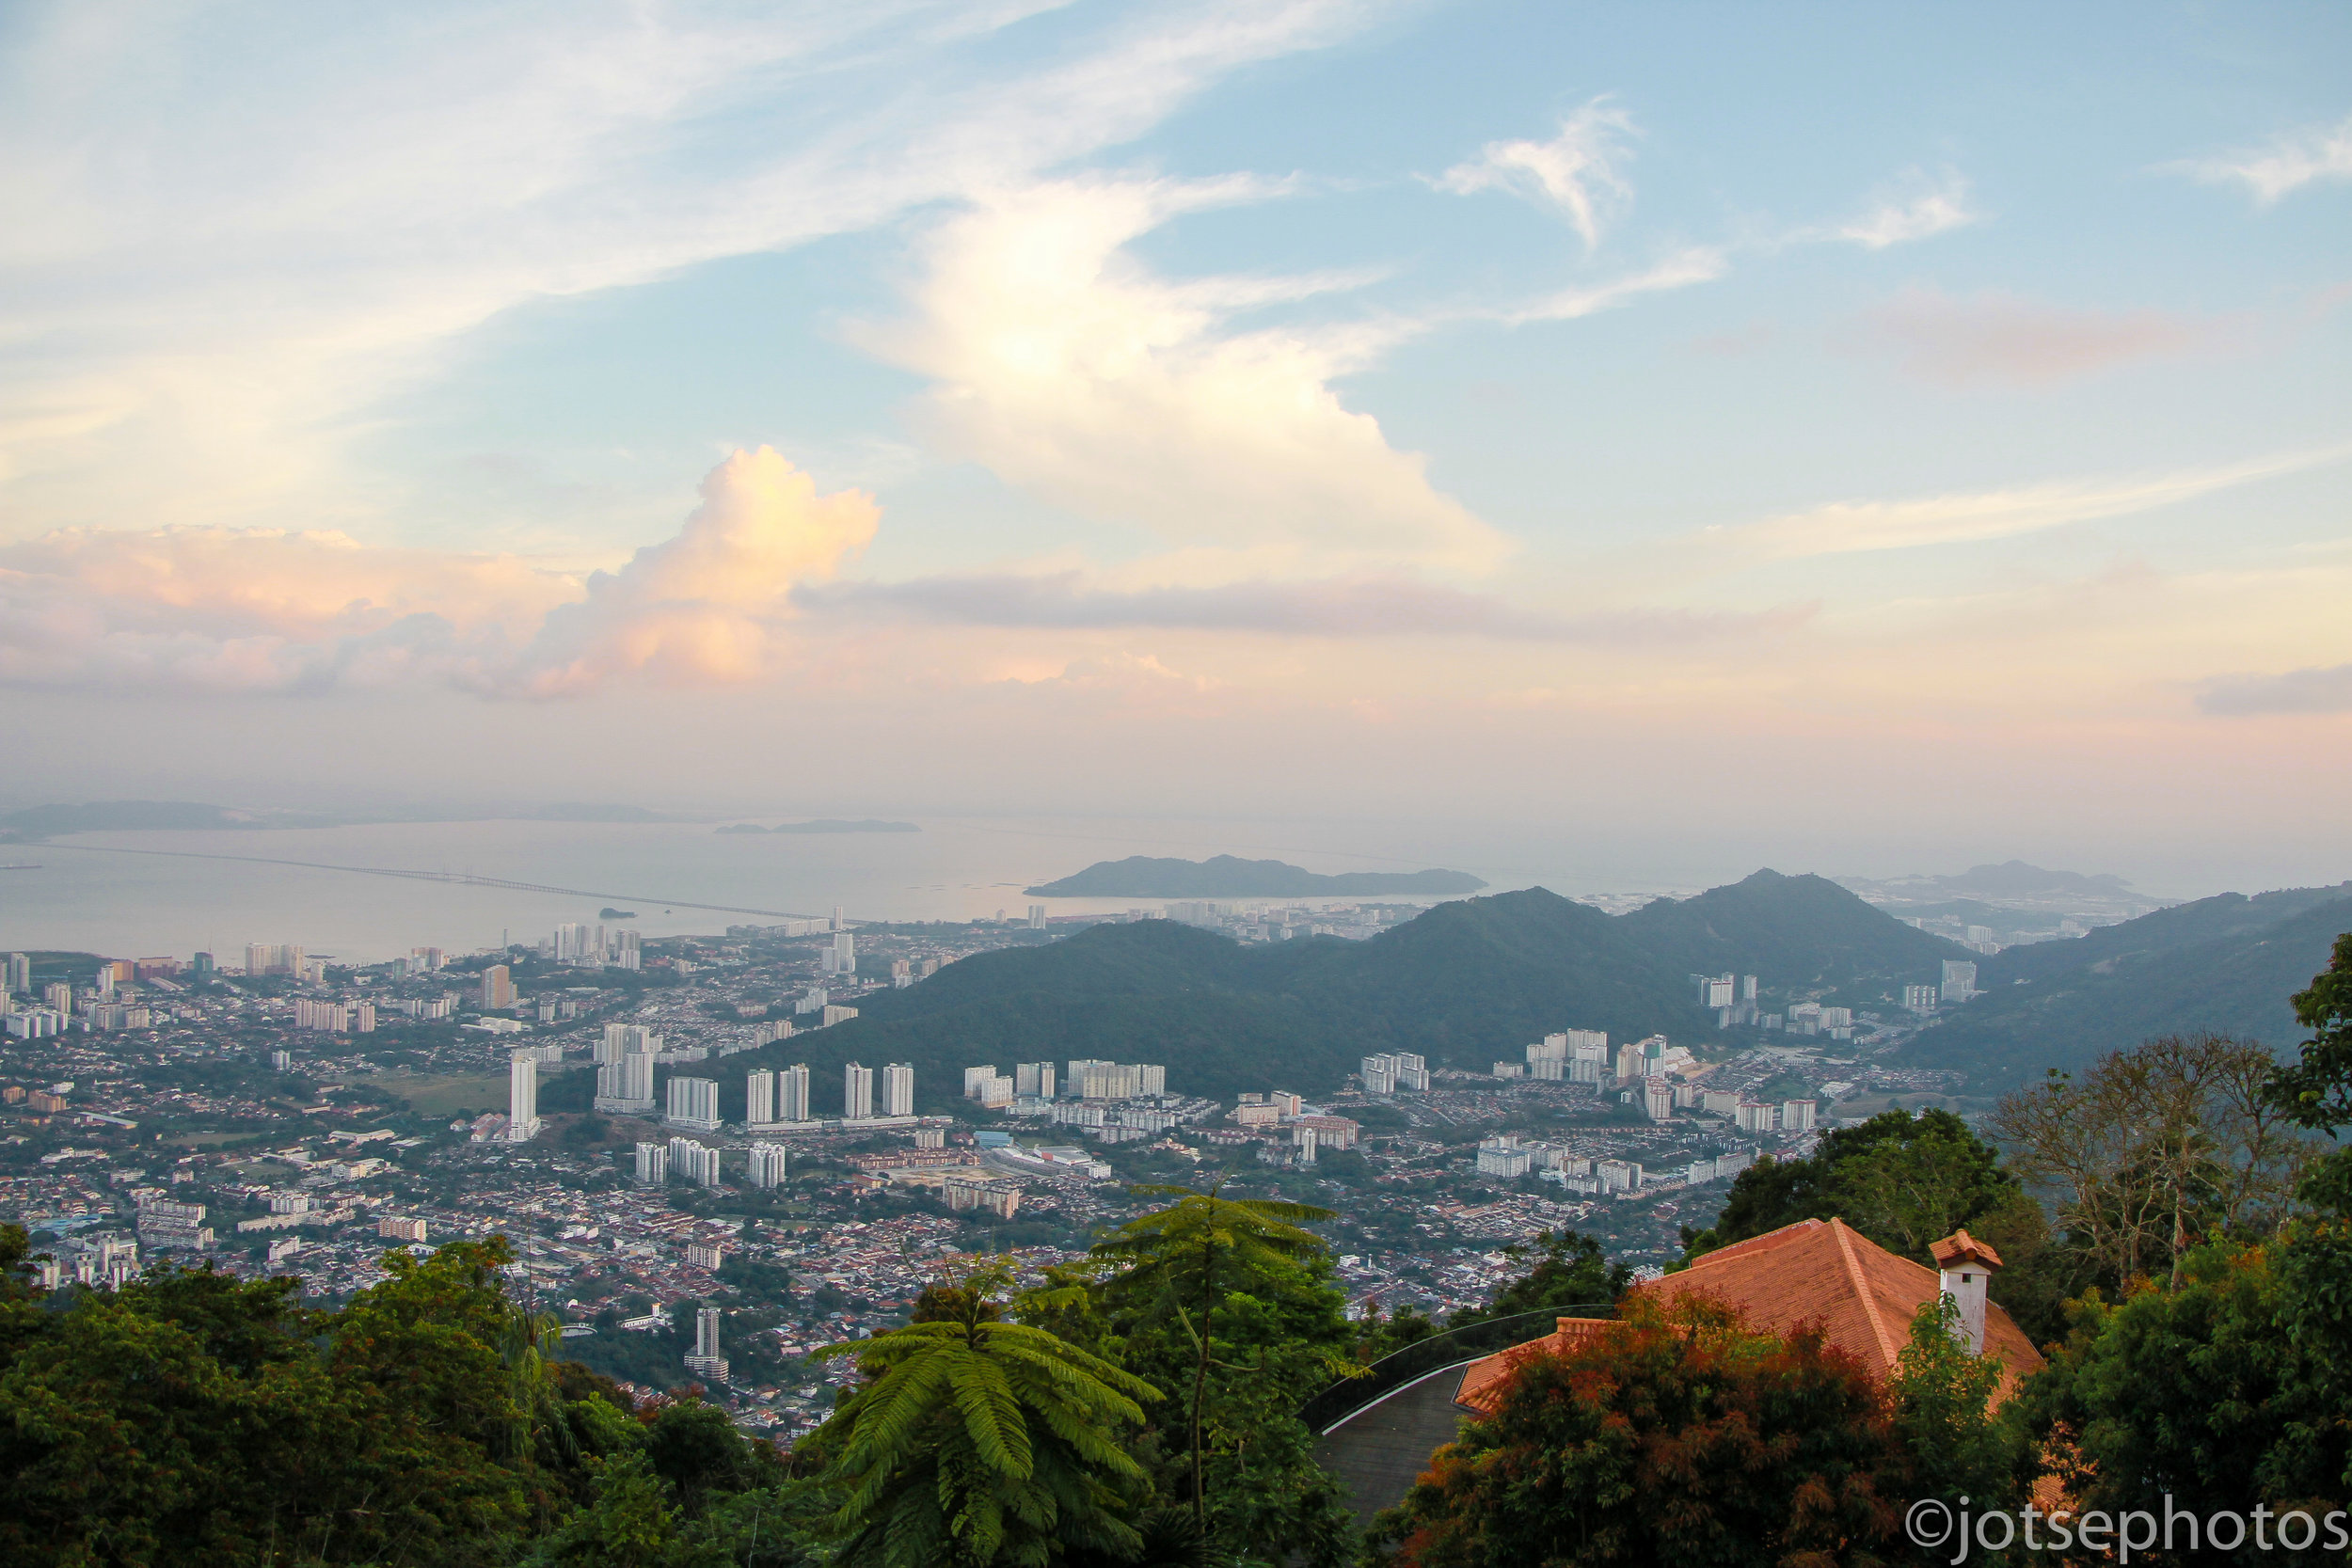 on-top-of-penang-hill_24687145942_o.jpg